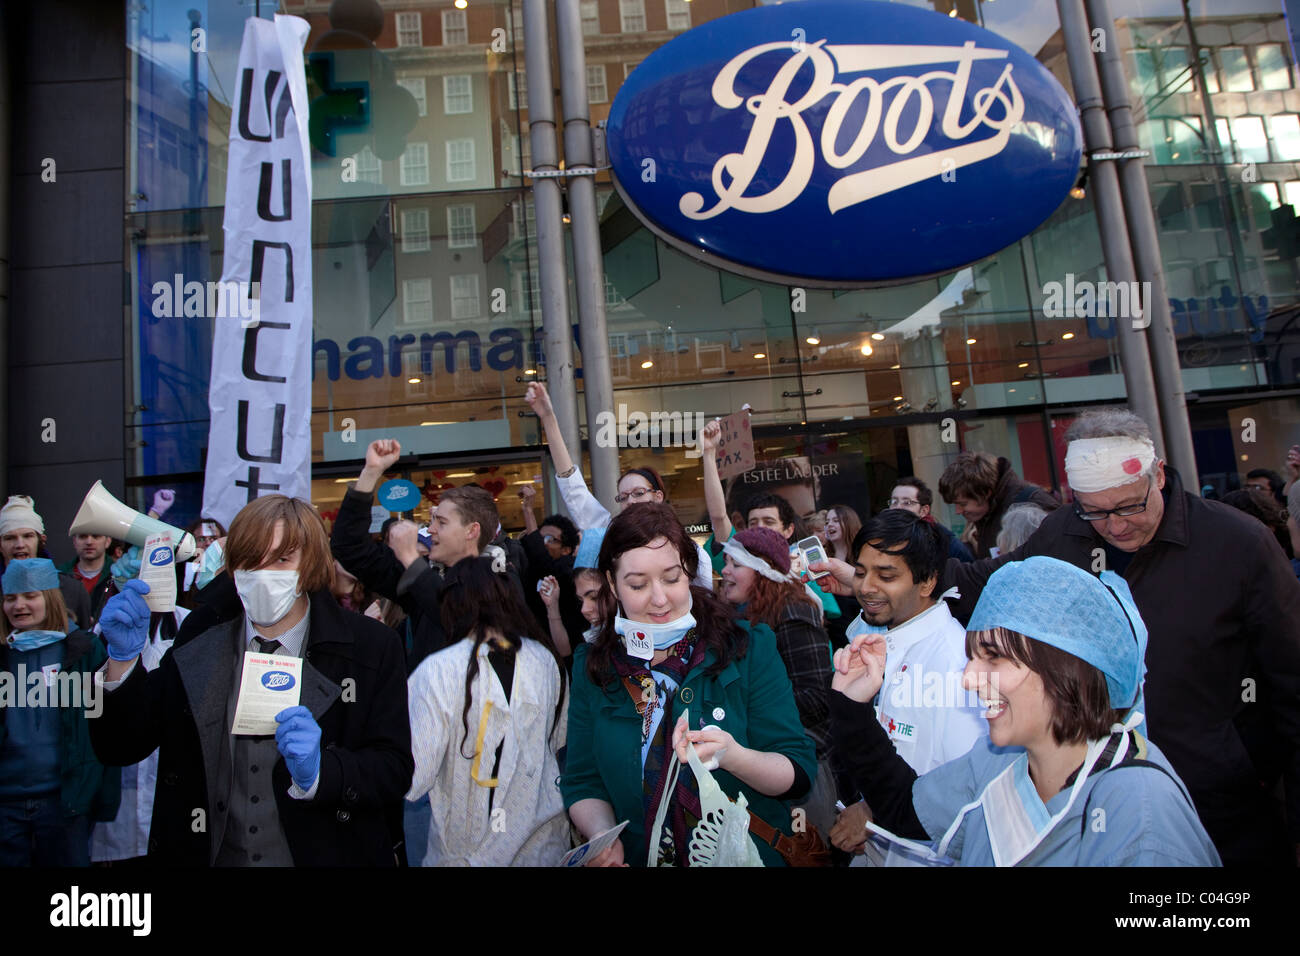 UK Uncut demo against alleged tax-dodging by Boots the chemist, London - Stock Image